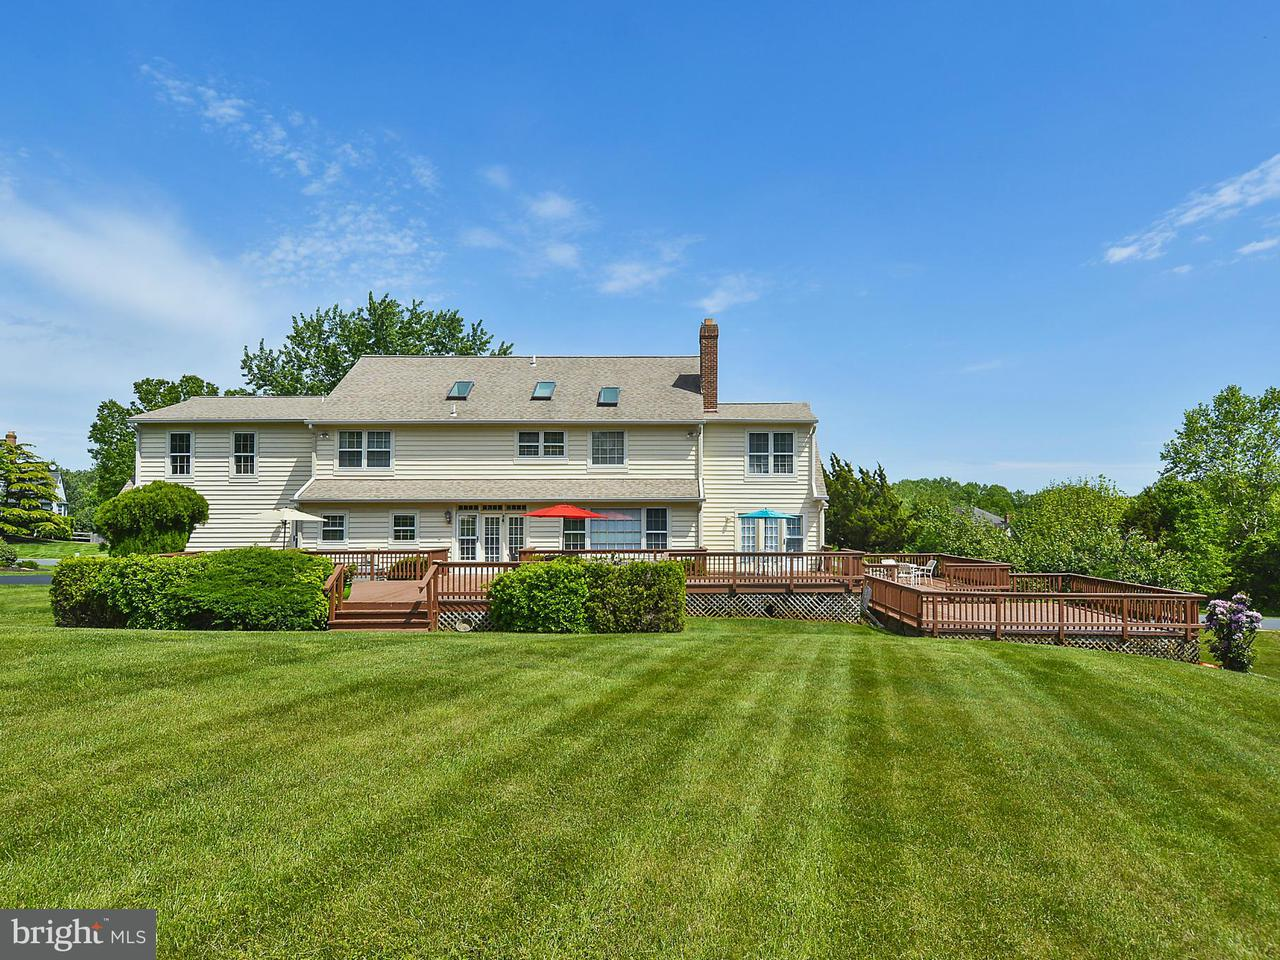 Single Family Home for Sale at 17500 CHARITY Lane 17500 CHARITY Lane Germantown, Maryland 20874 United States